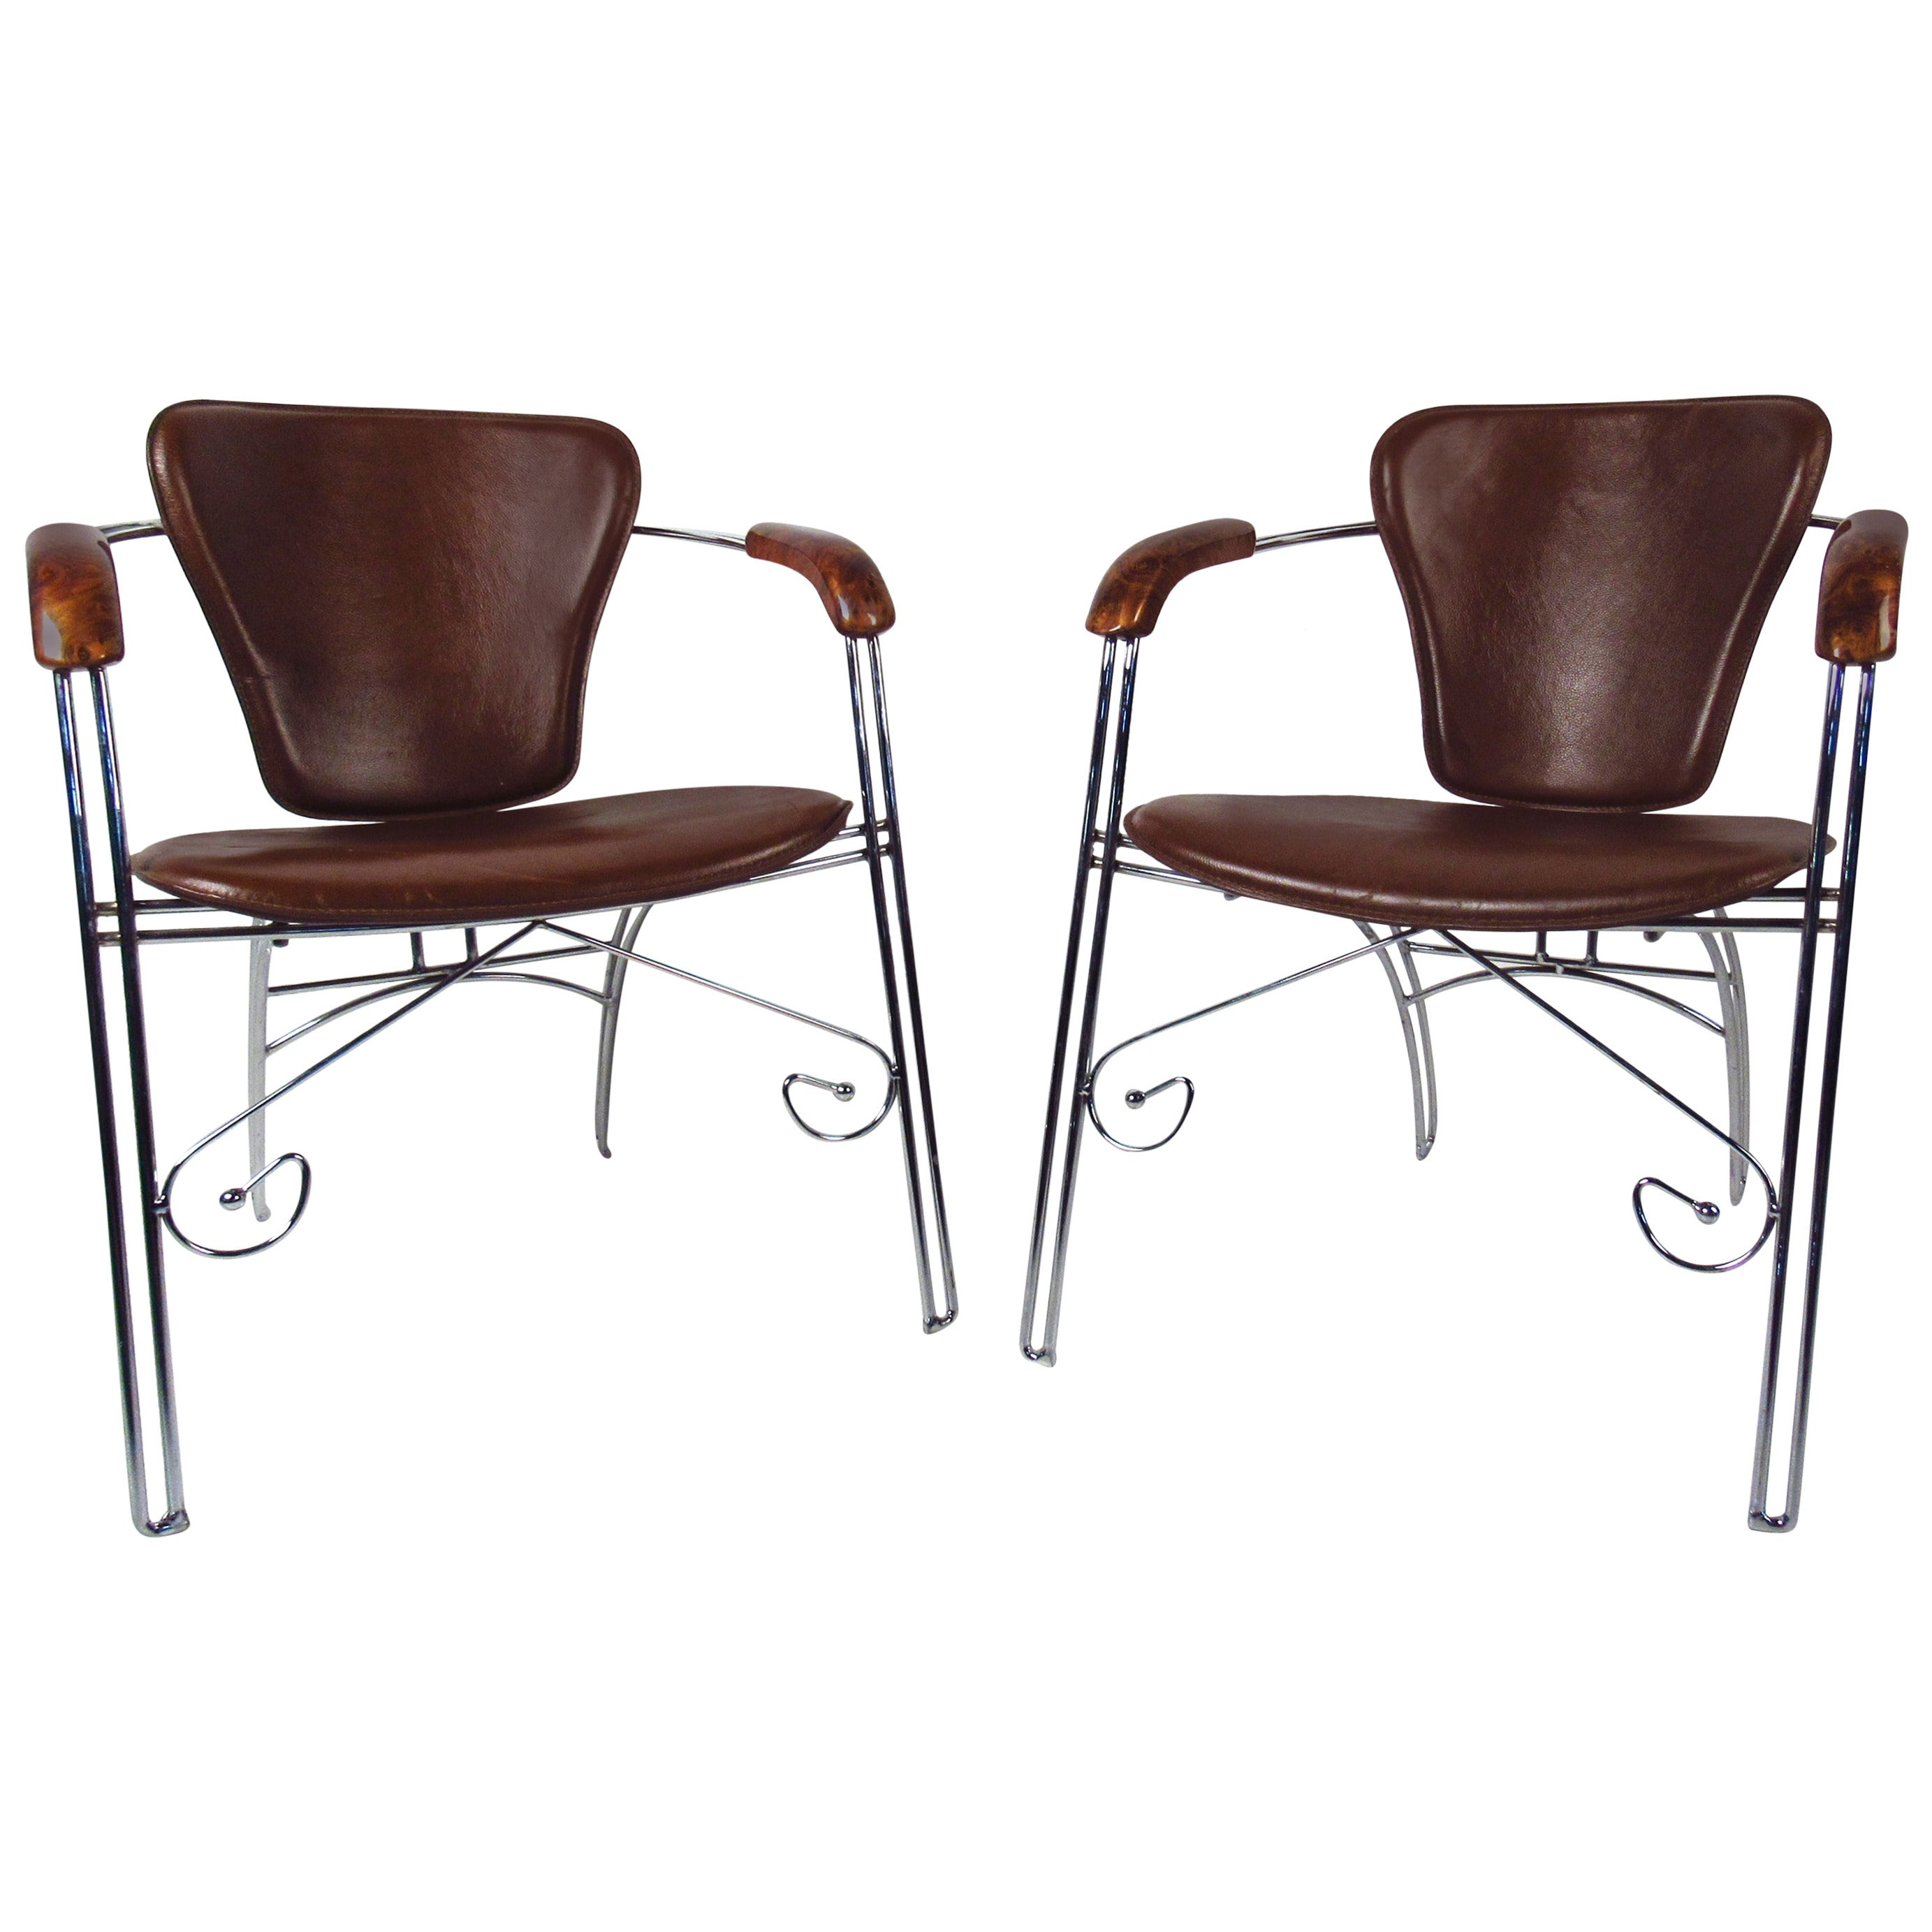 Vintage Modern Leather and Chrome Chairs